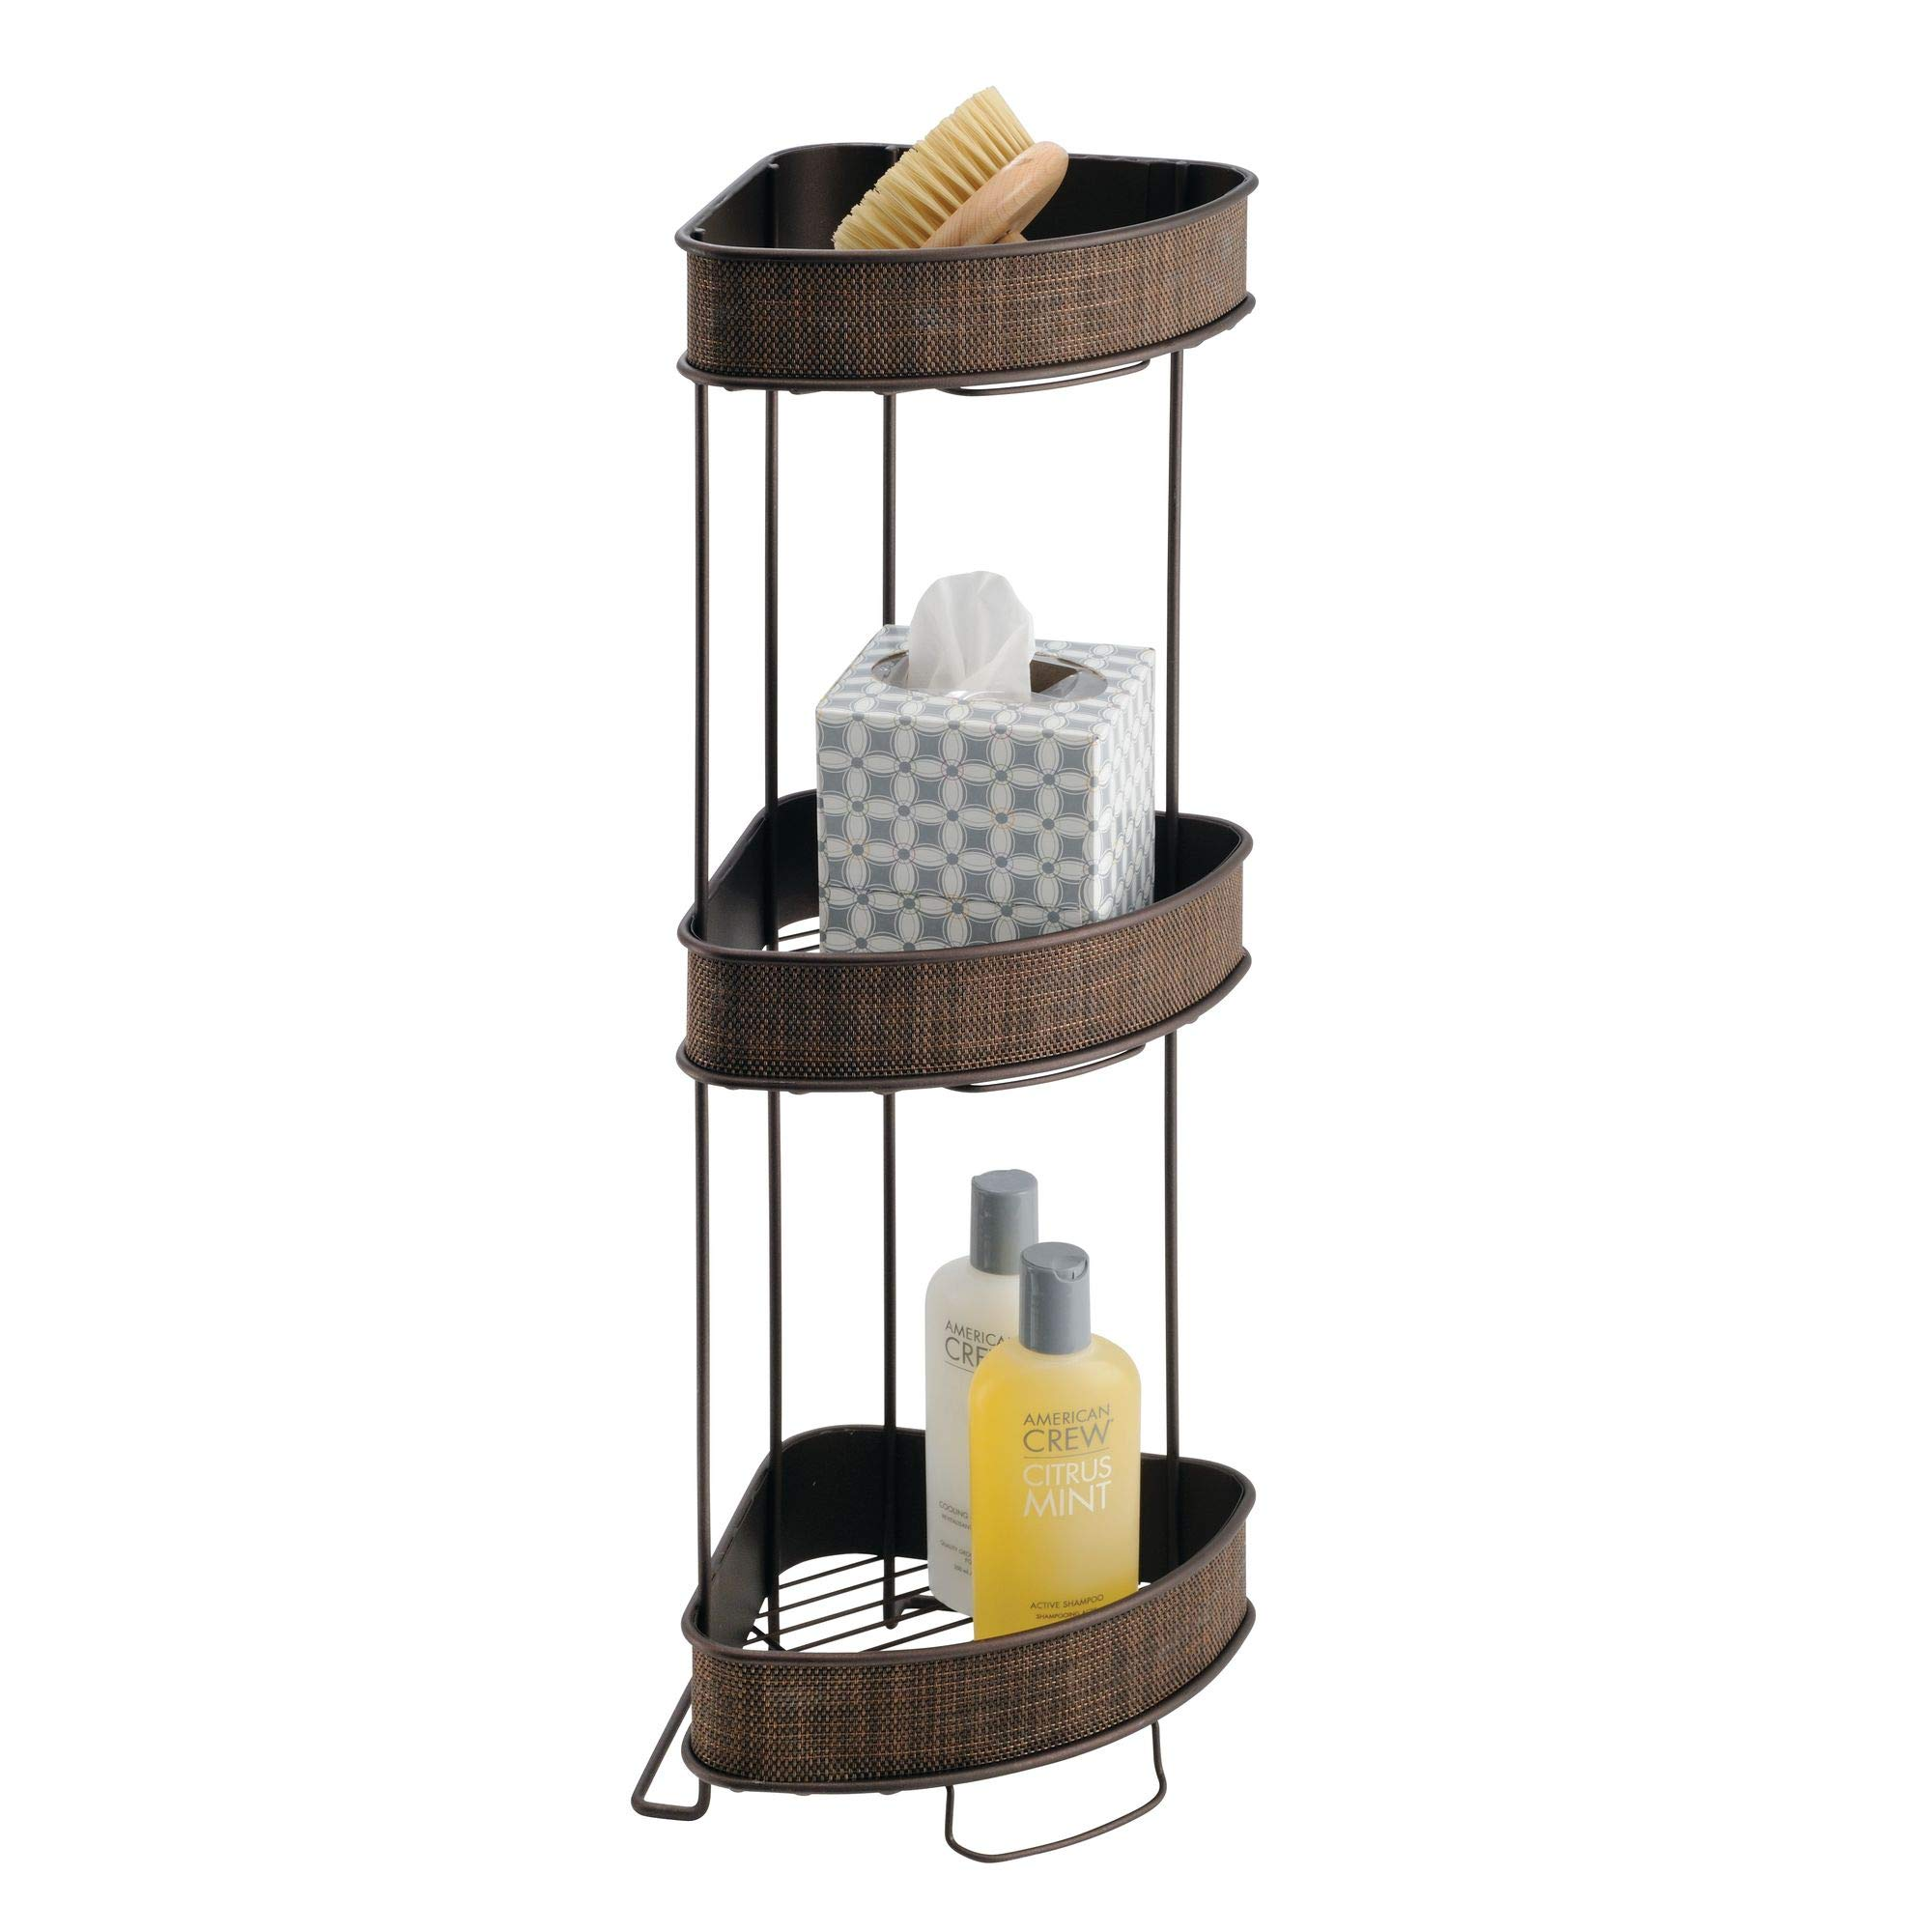 iDesign Twillo Metal Wire Corner Standing Shower Caddy 3-Tier Bath Shelf Baskets for Towels, Soap, Shampoo, Lotion, Accessories,